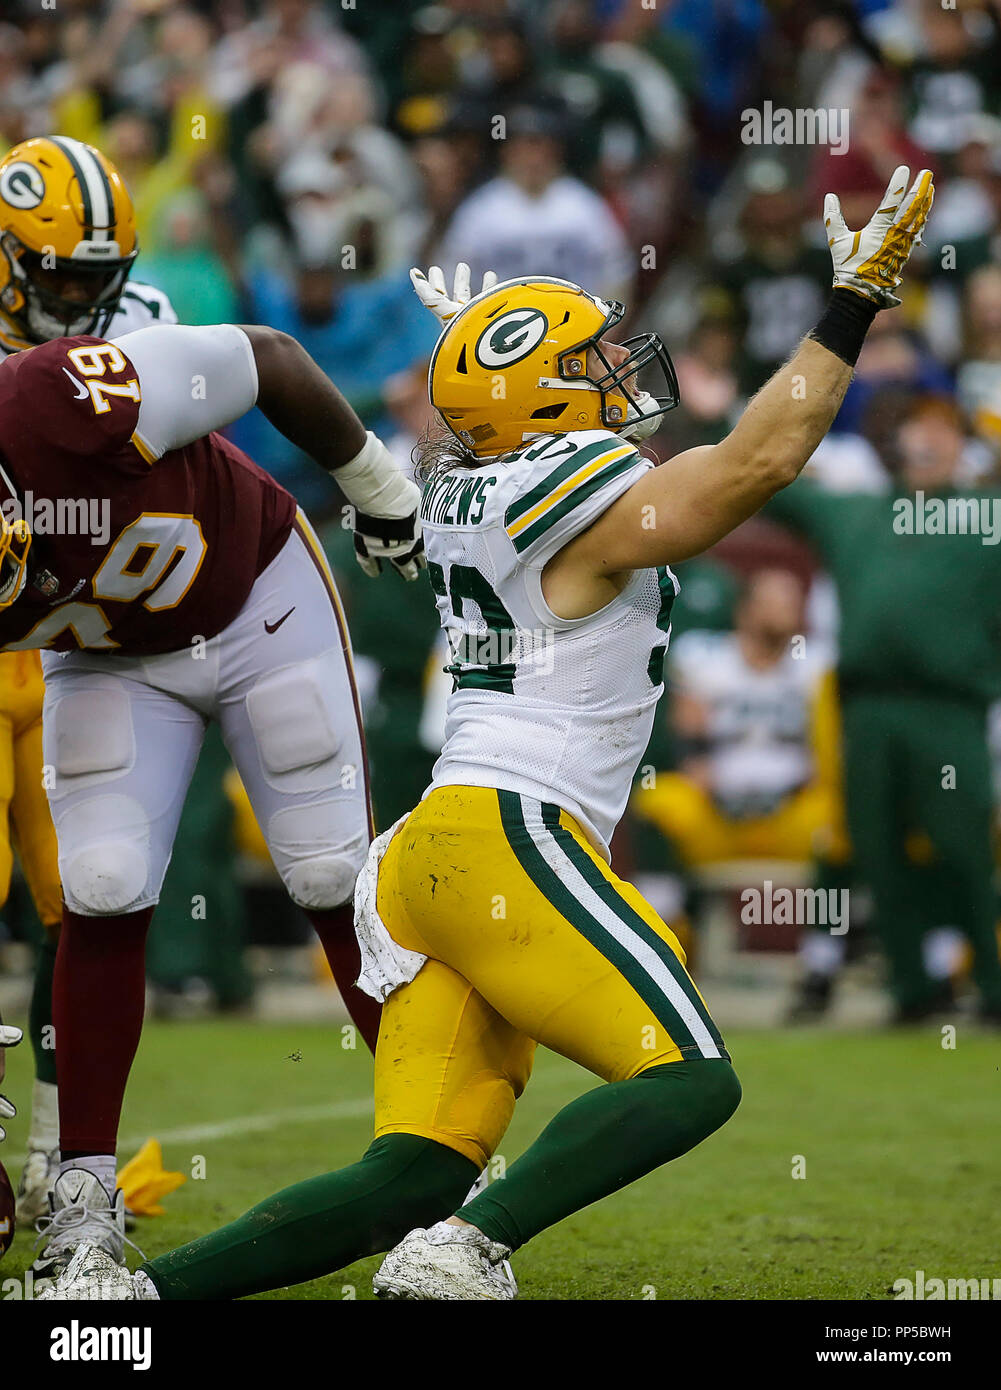 Landover, MD, USA. 23rd Sep, 2018. Green Bay Packers LB #52 Clay Matthews protests a roughing the passer penalty during a NFL football game between the Washington Redskins and the Green Bay Packers at FedEx Field in Landover, MD. Justin Cooper/CSM/Alamy Live News - Stock Image